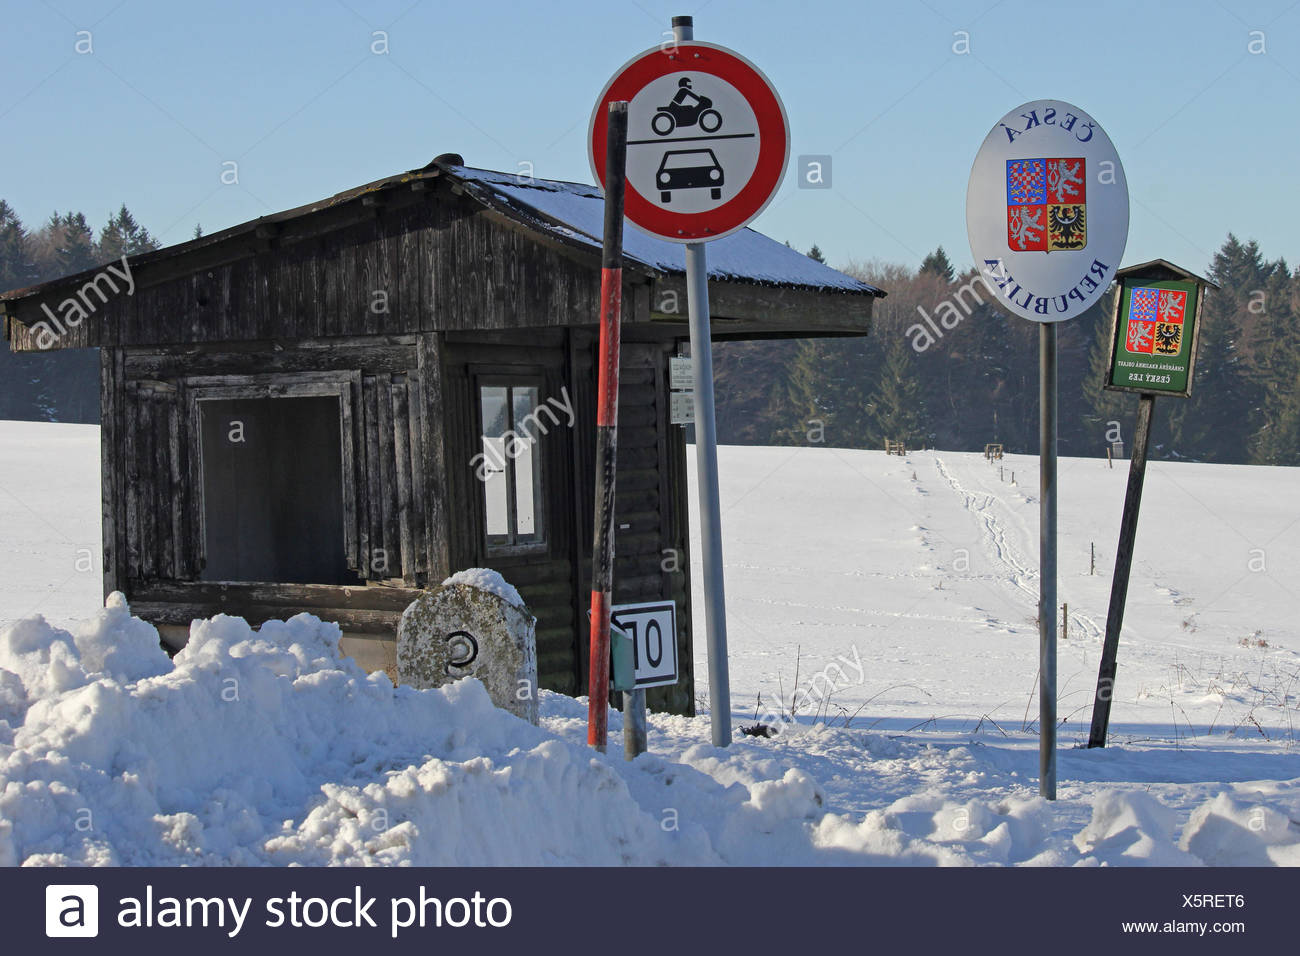 Country border - Stock Image